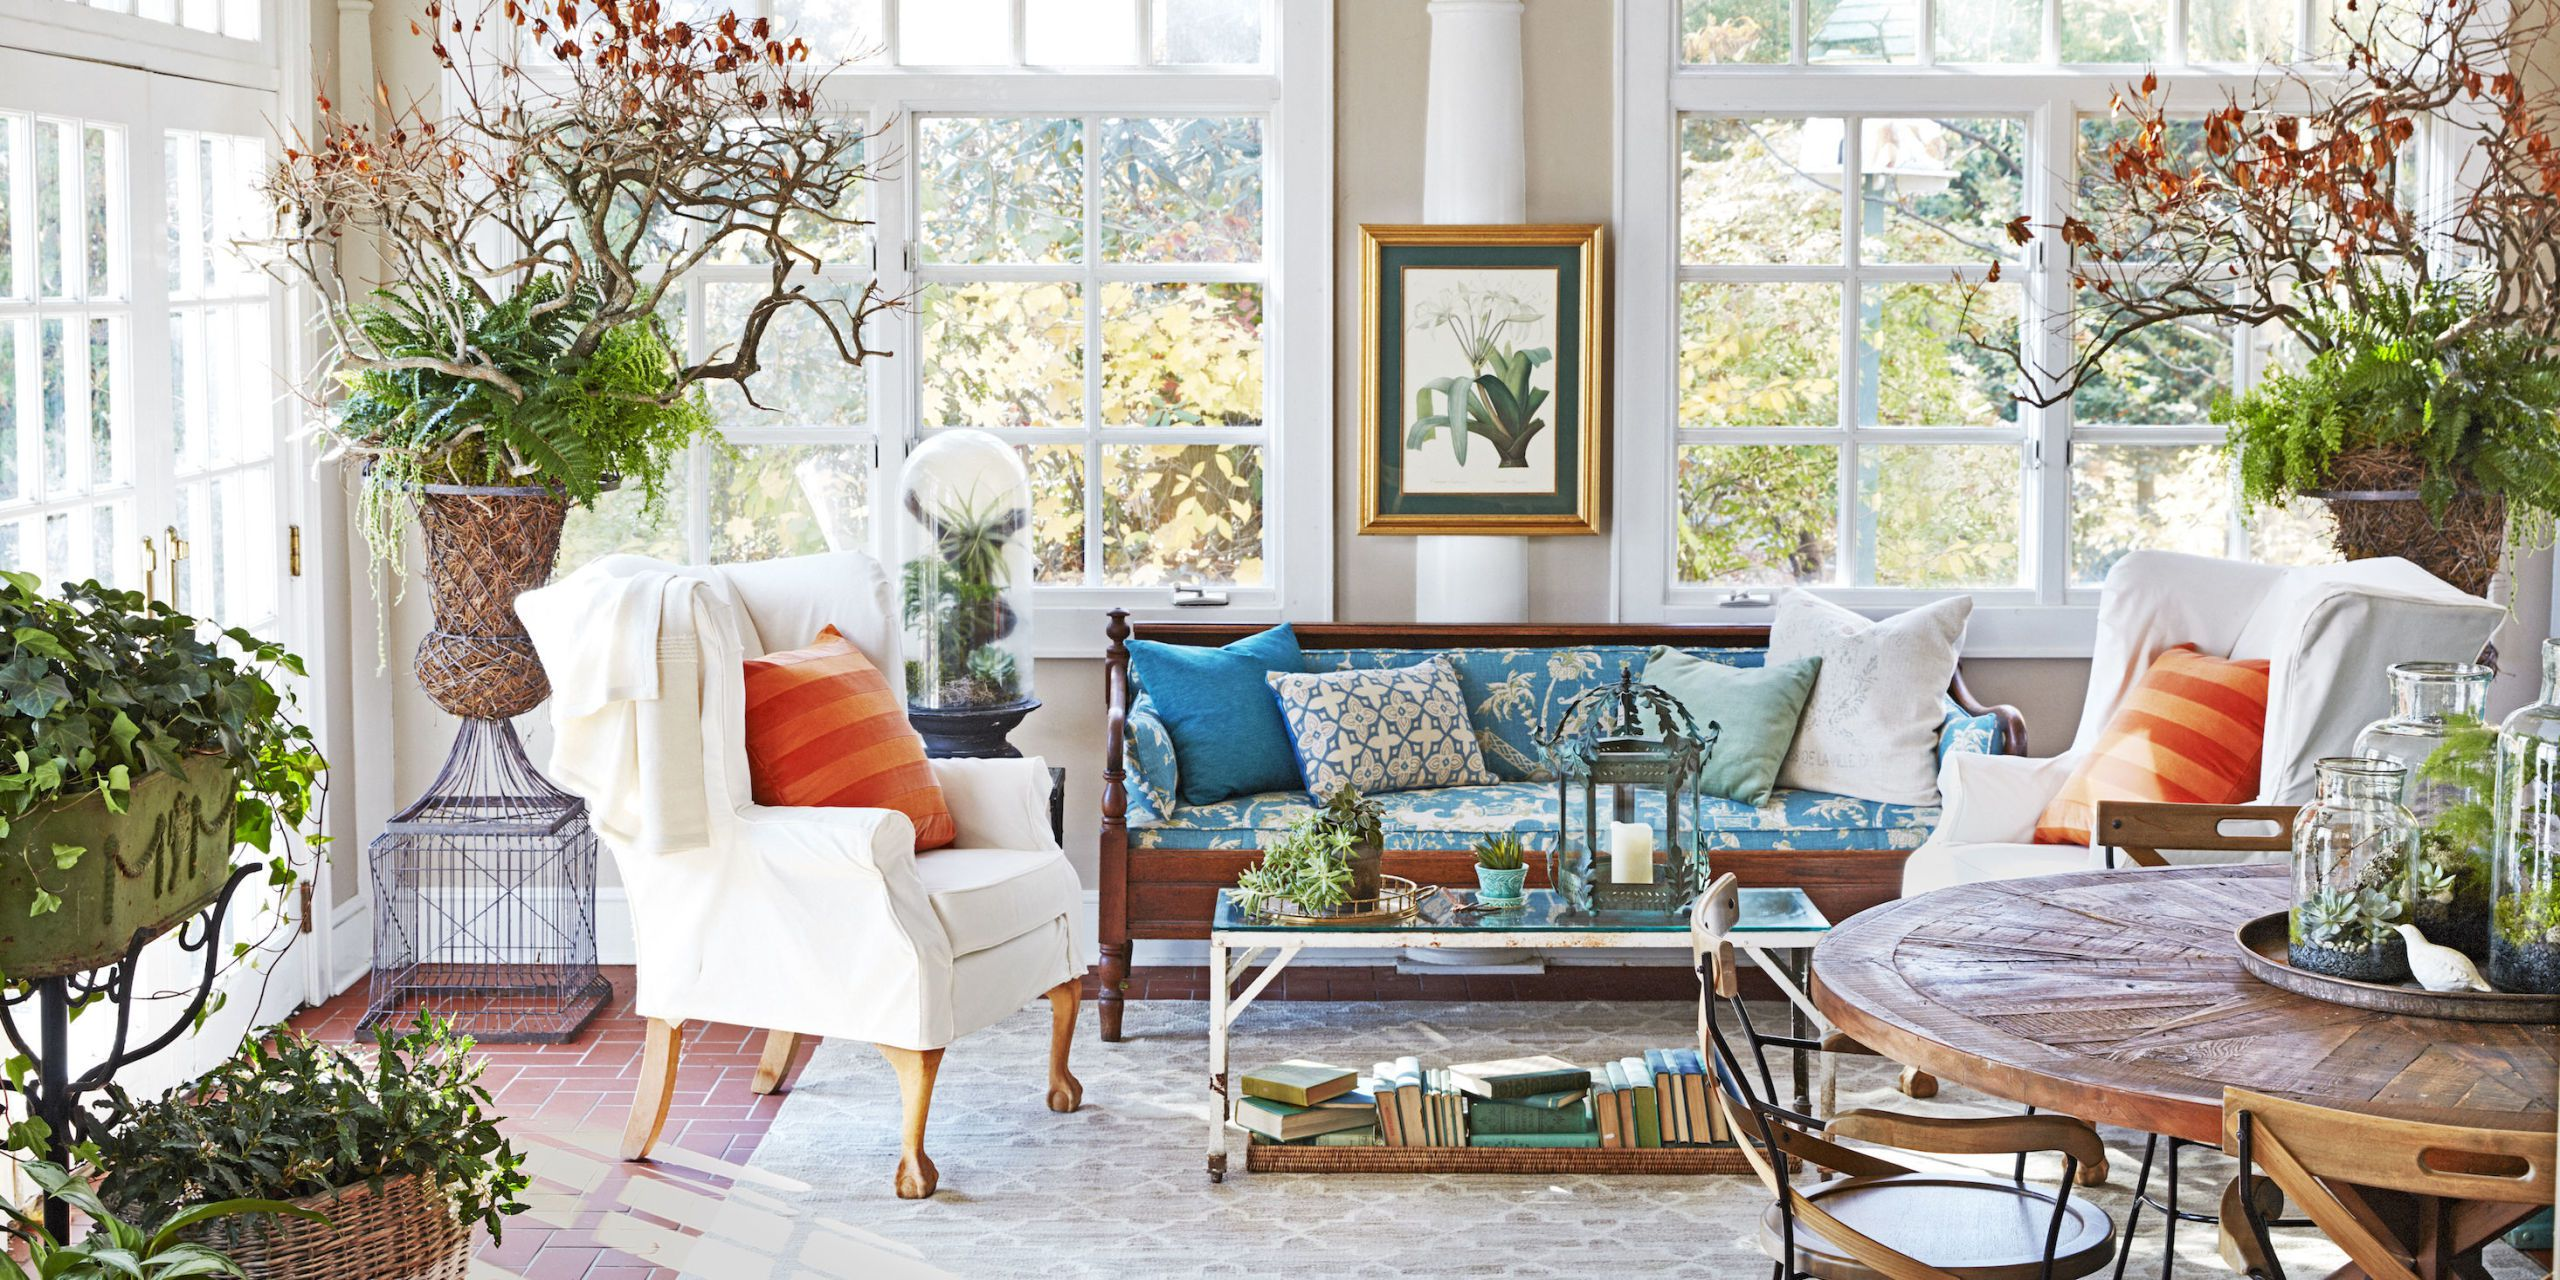 sunroom furniture deborah herbertson connecticut cottage sunroom LEPZCKN